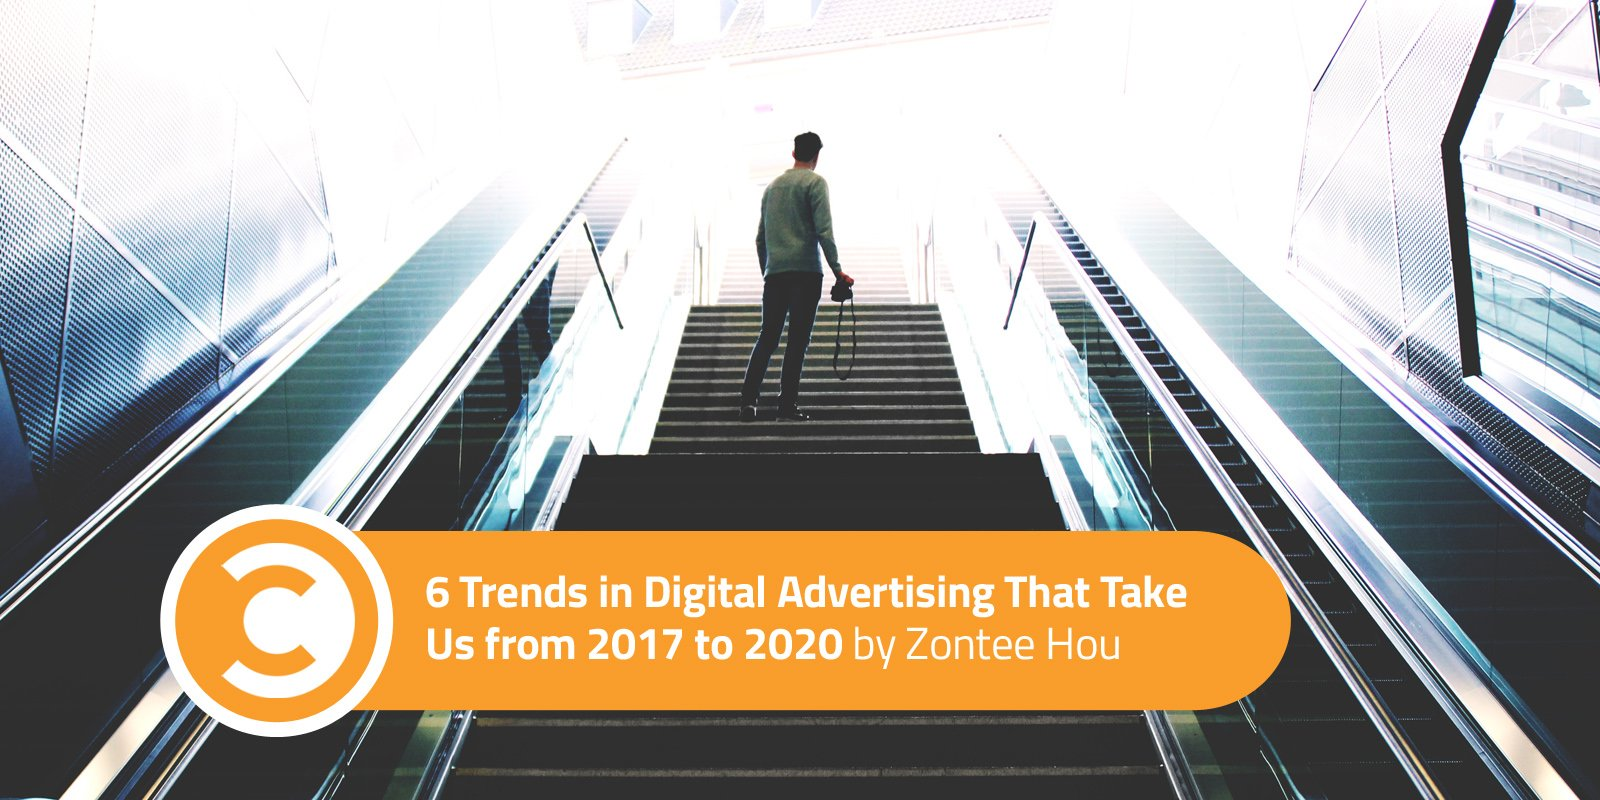 6 Trends in Digital Advertising That Take Us from 2017 to 2020